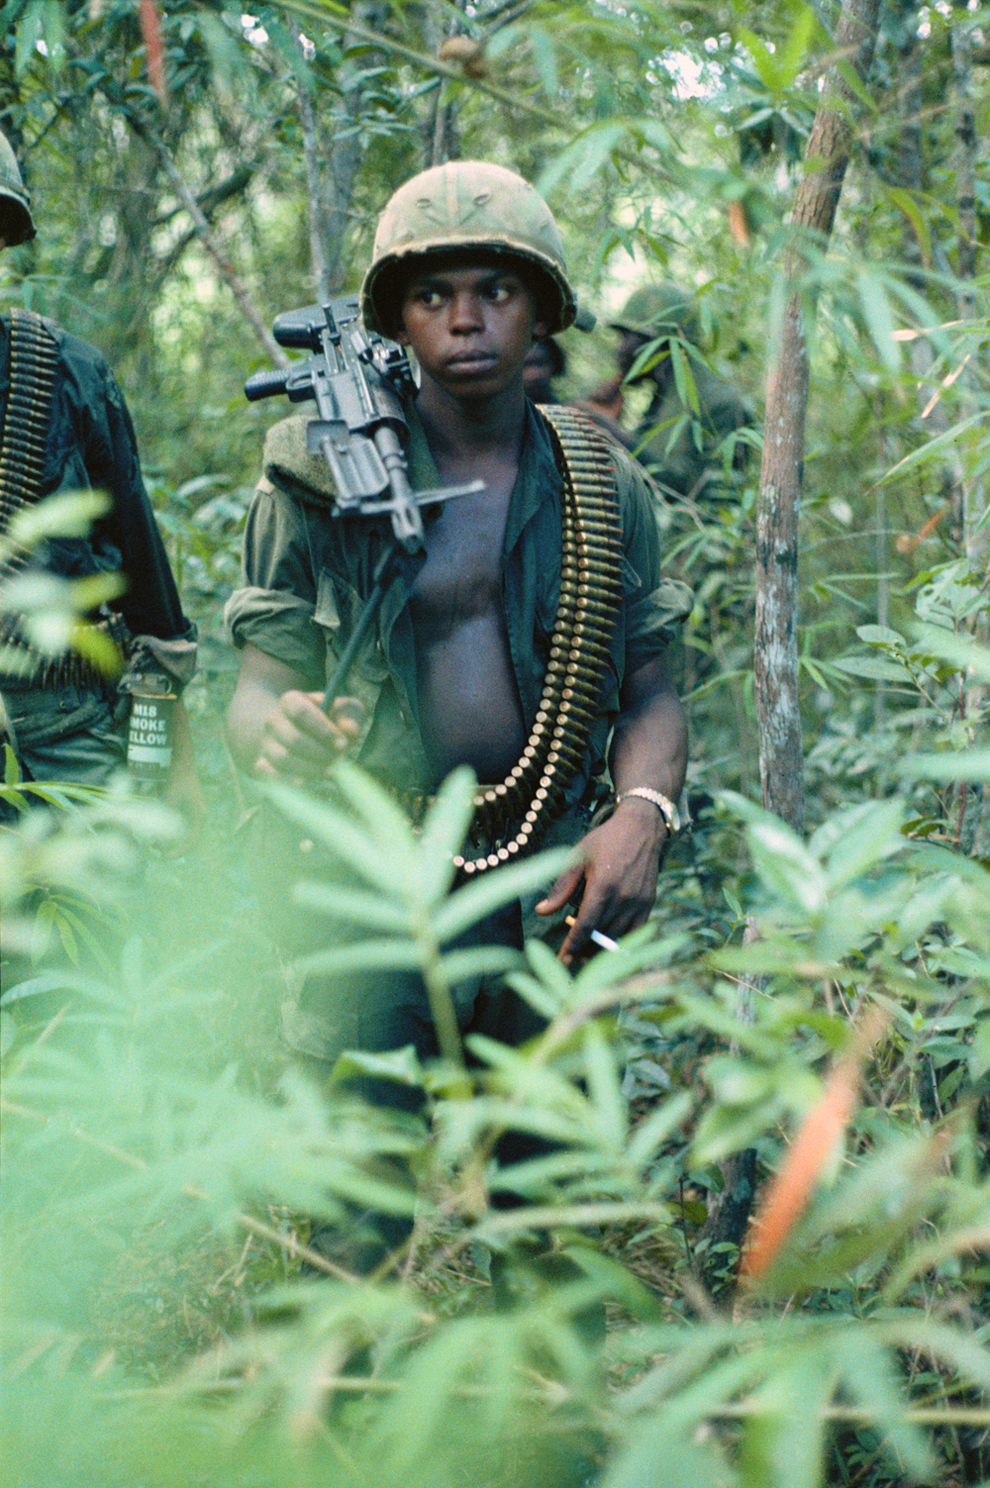 Images of Real Jungle War Movies - #rock-cafe